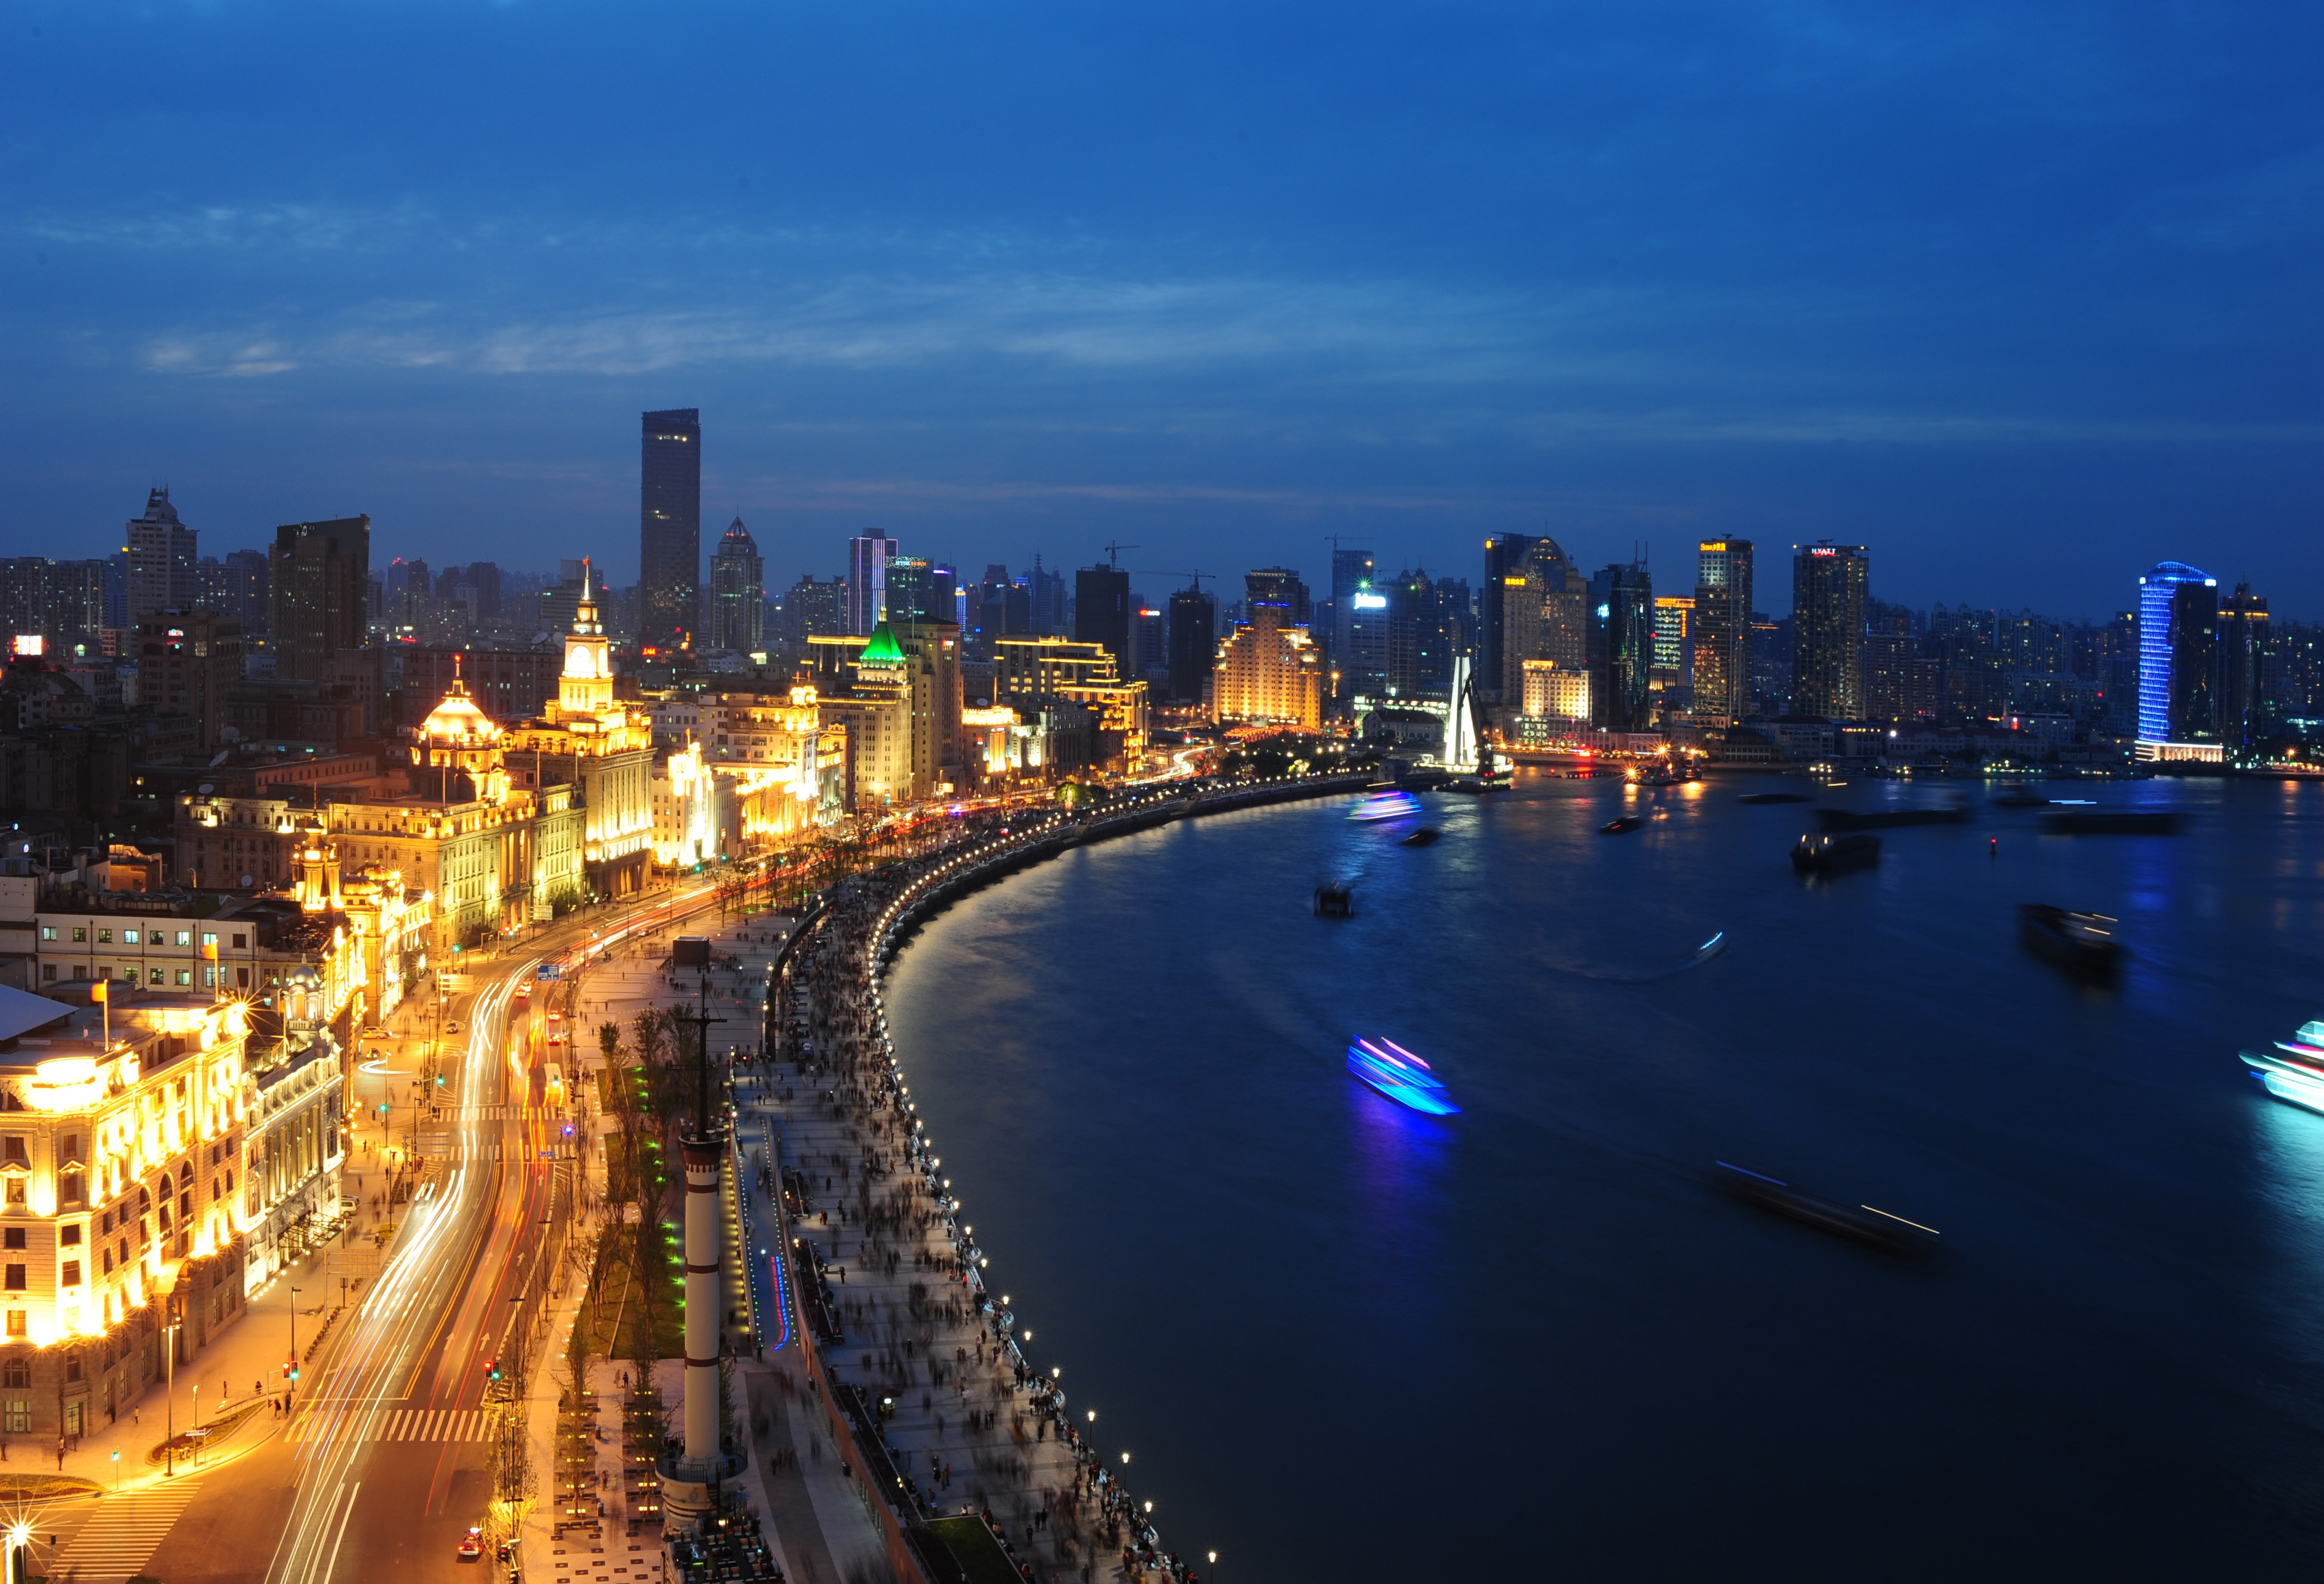 Asia's fixed income market inviting in low interest rate world